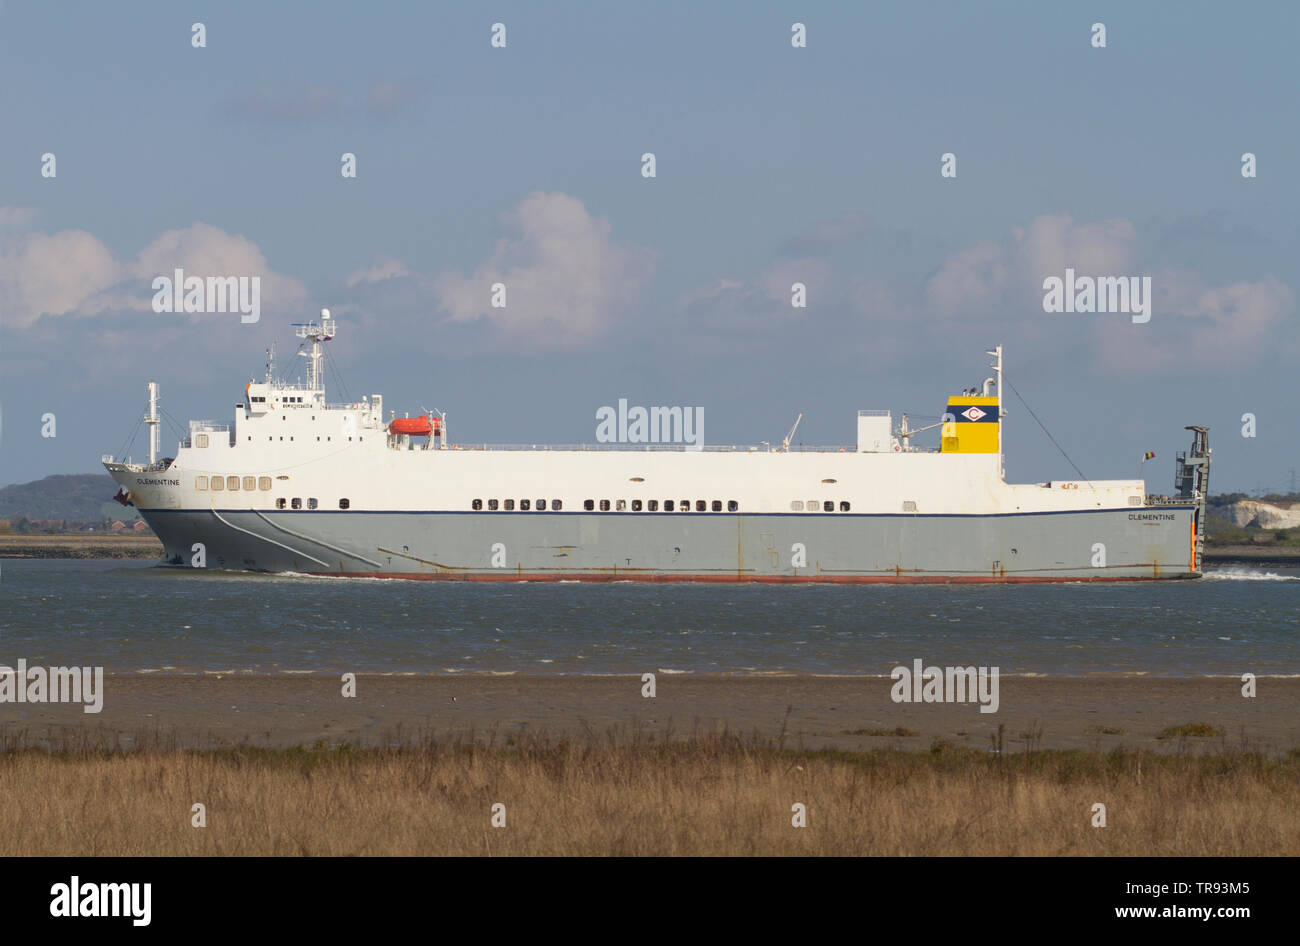 The Clementine a ro-ro cargo ship sailing in the Thames Estuary near Tilbury in Essex. - Stock Image